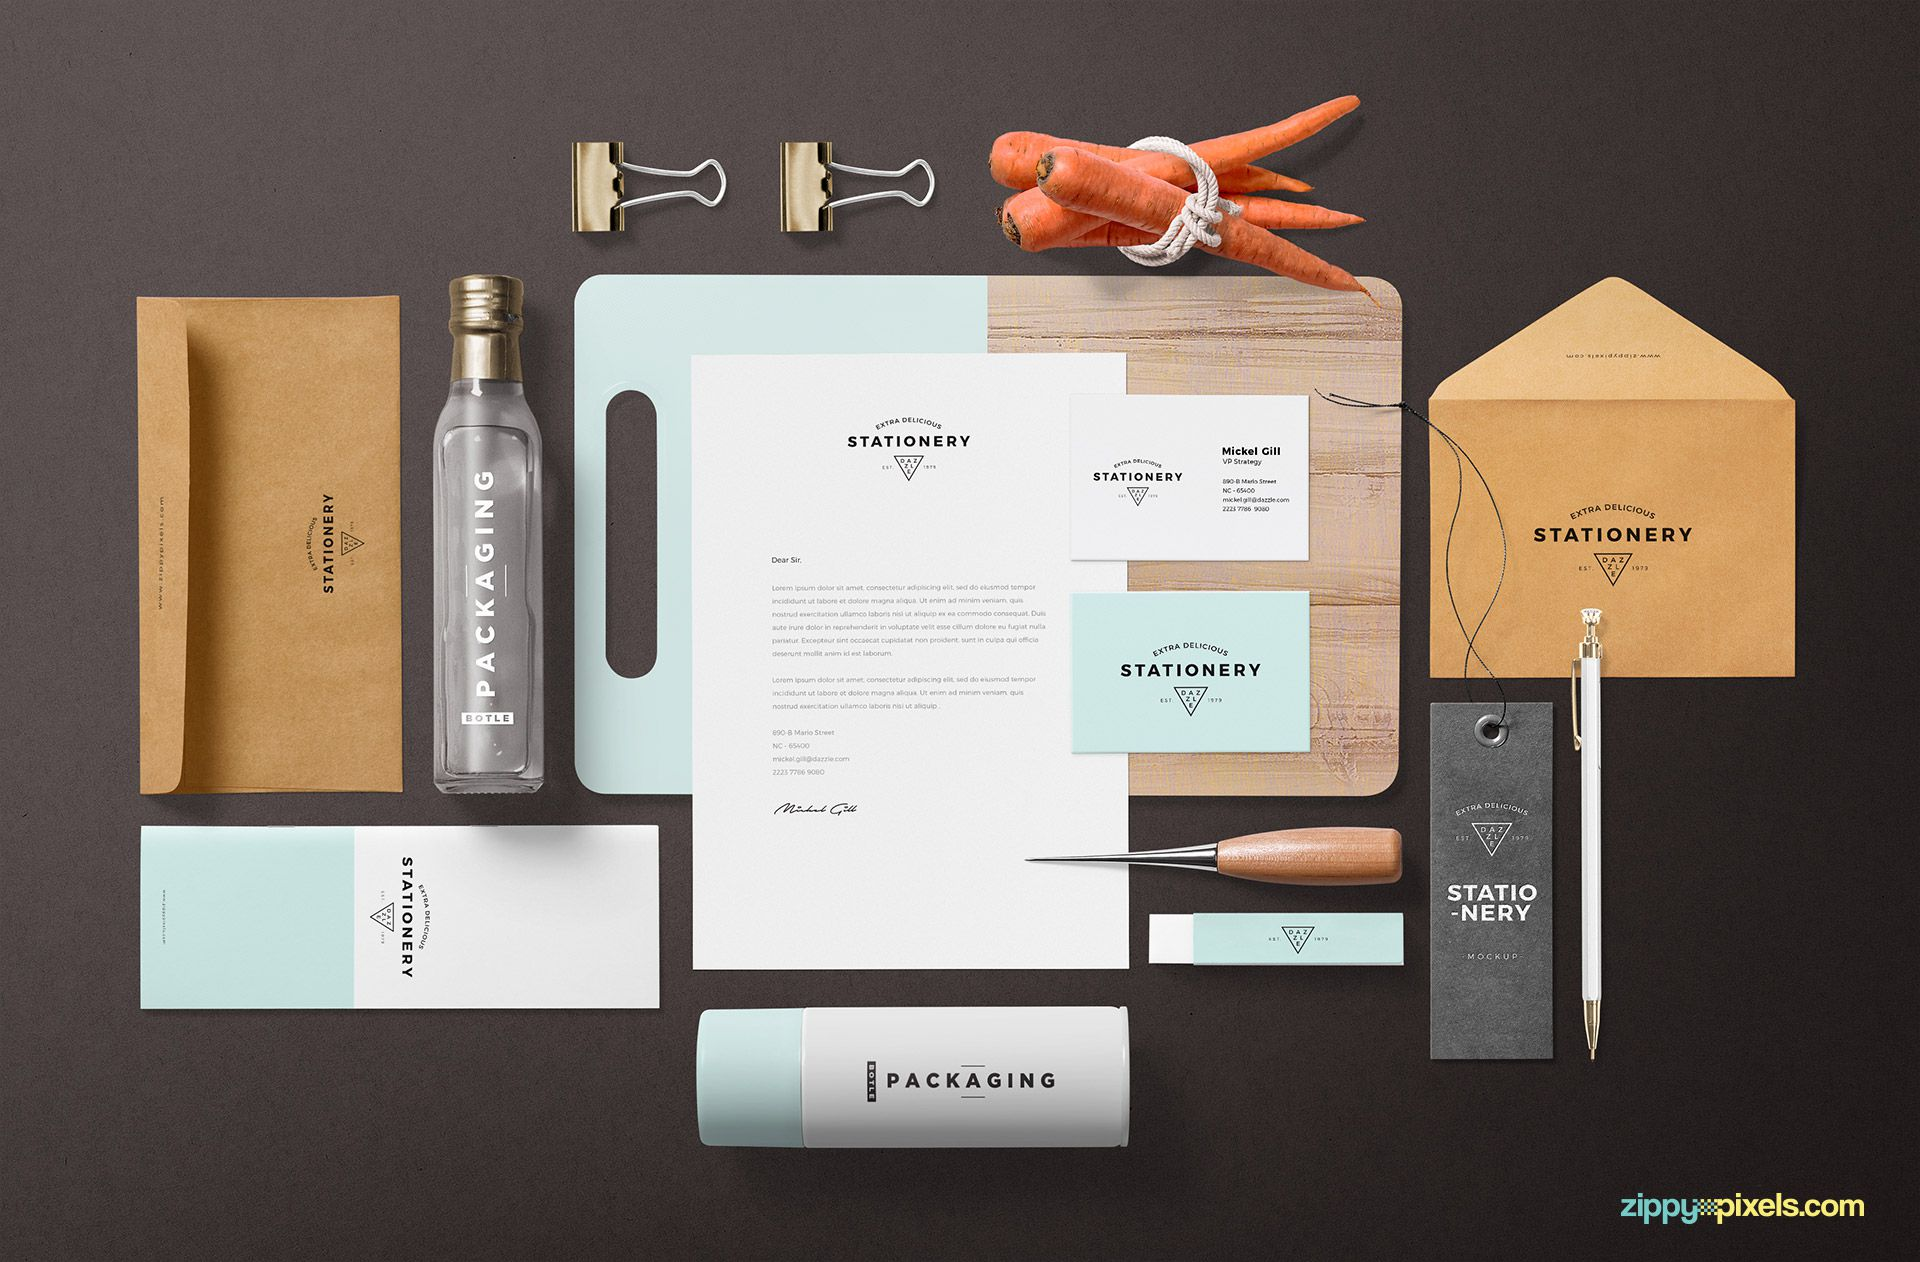 Customize the background of the branding mockup.